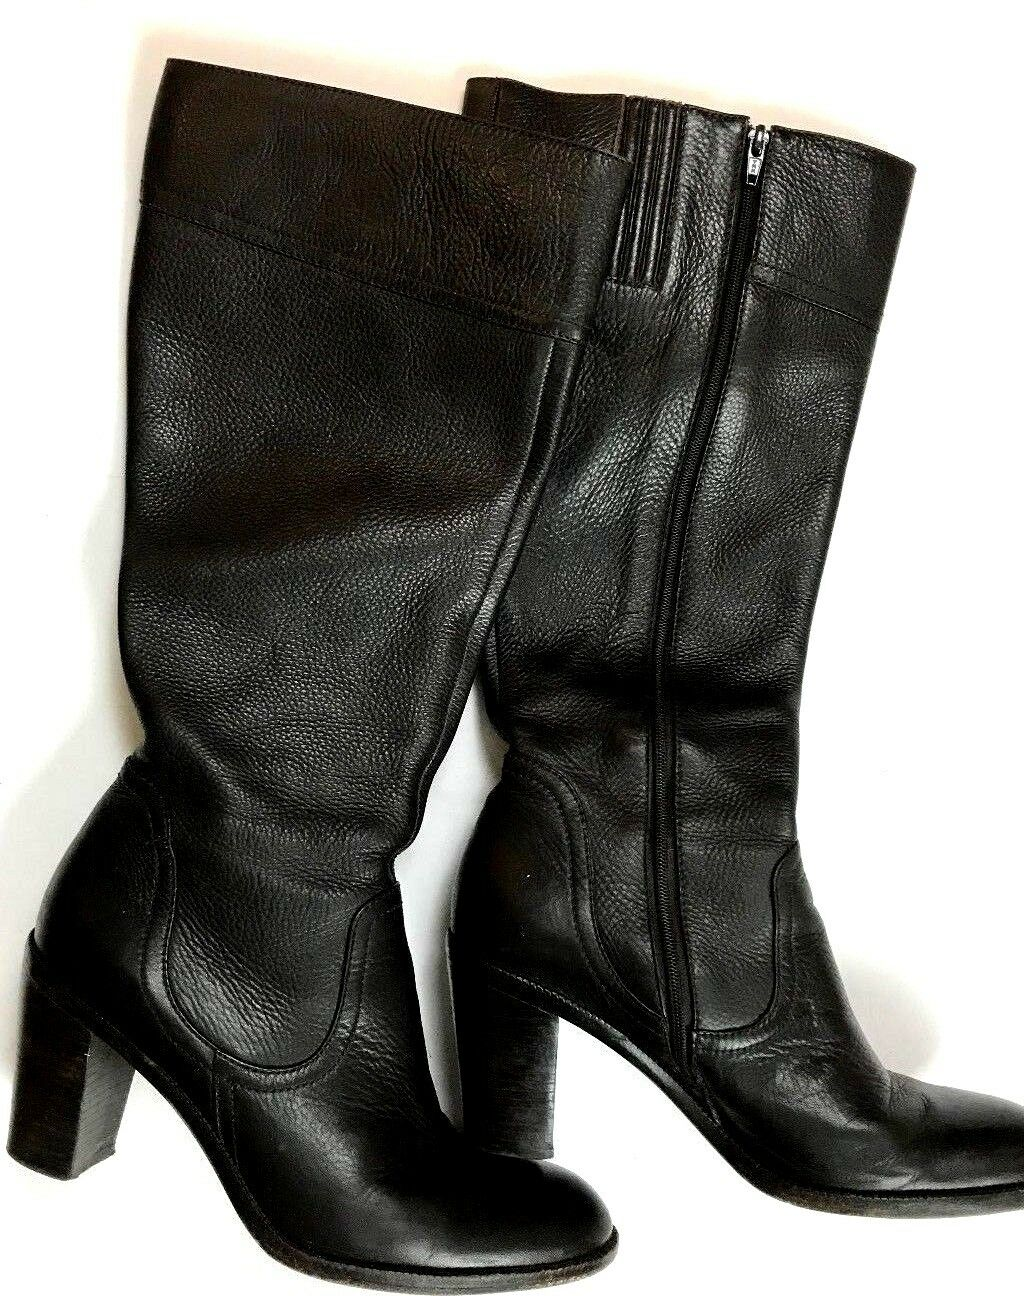 Ann Taylor Women's Black Leather Knee High Boot Size 7.5 E